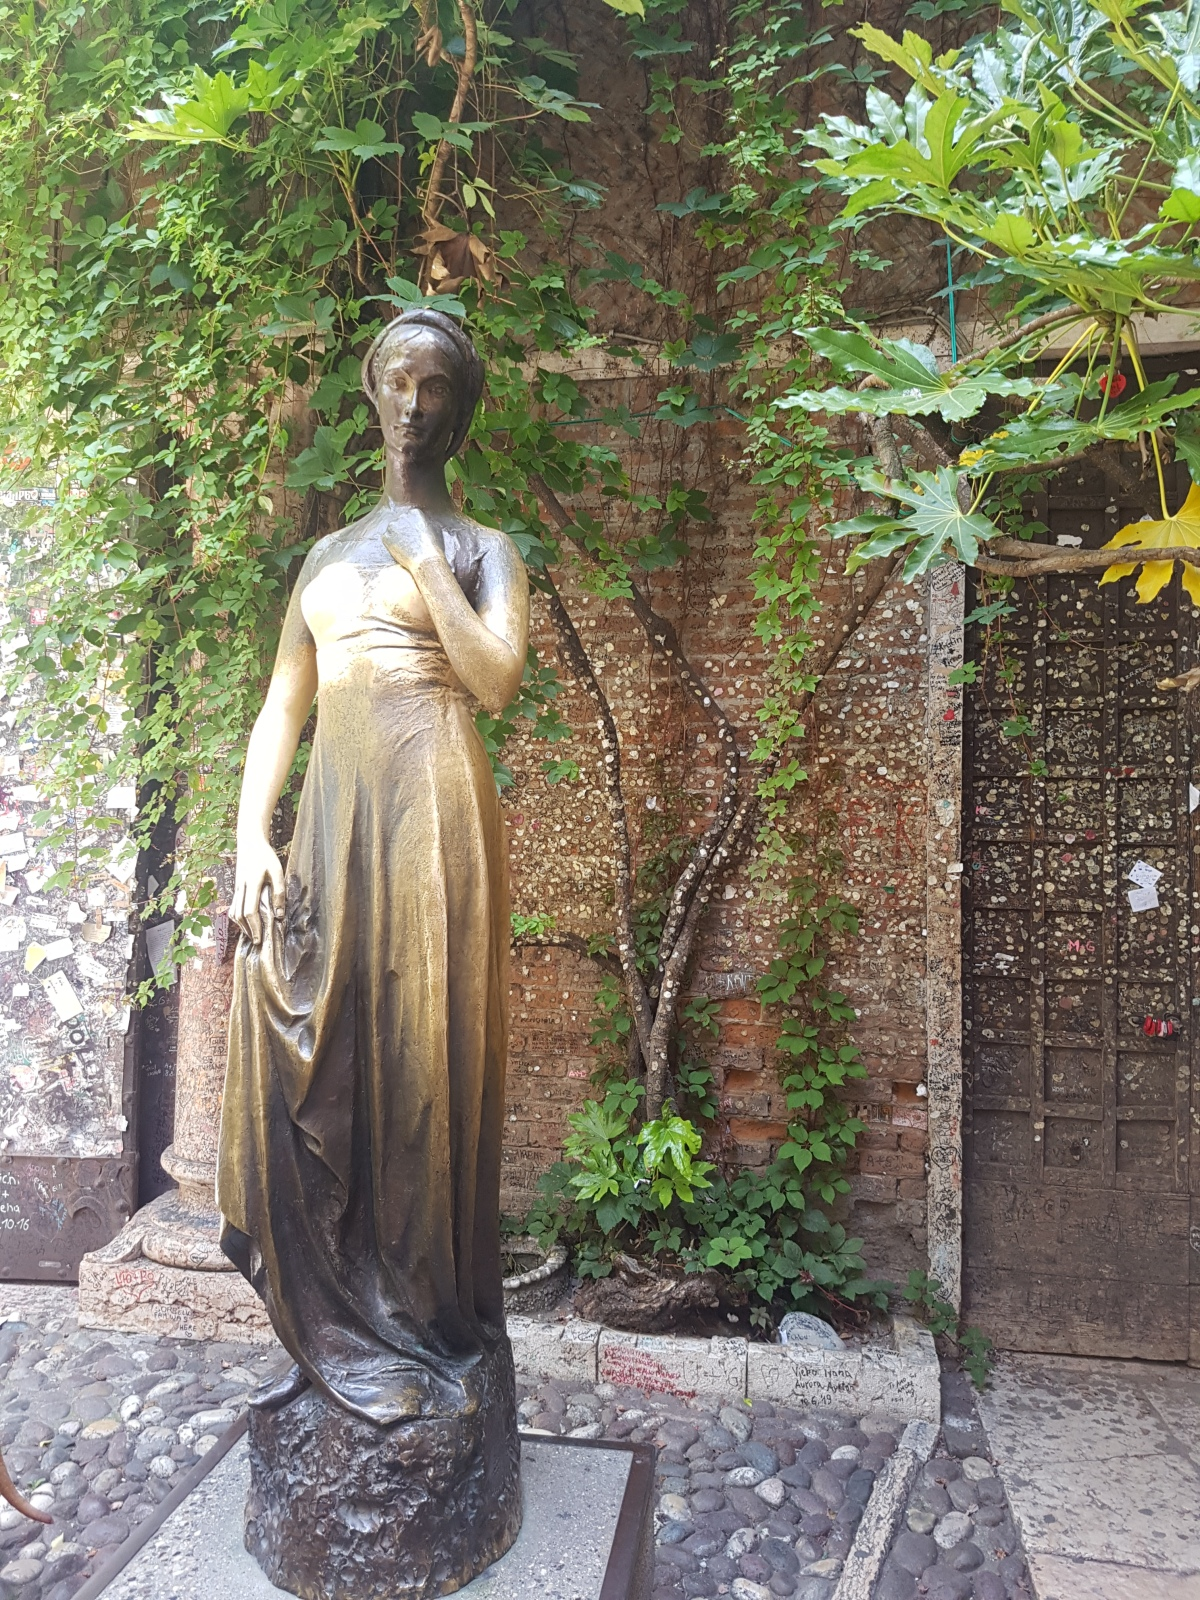 Visiting Italy: A Dream Come True, Part 3: Verona